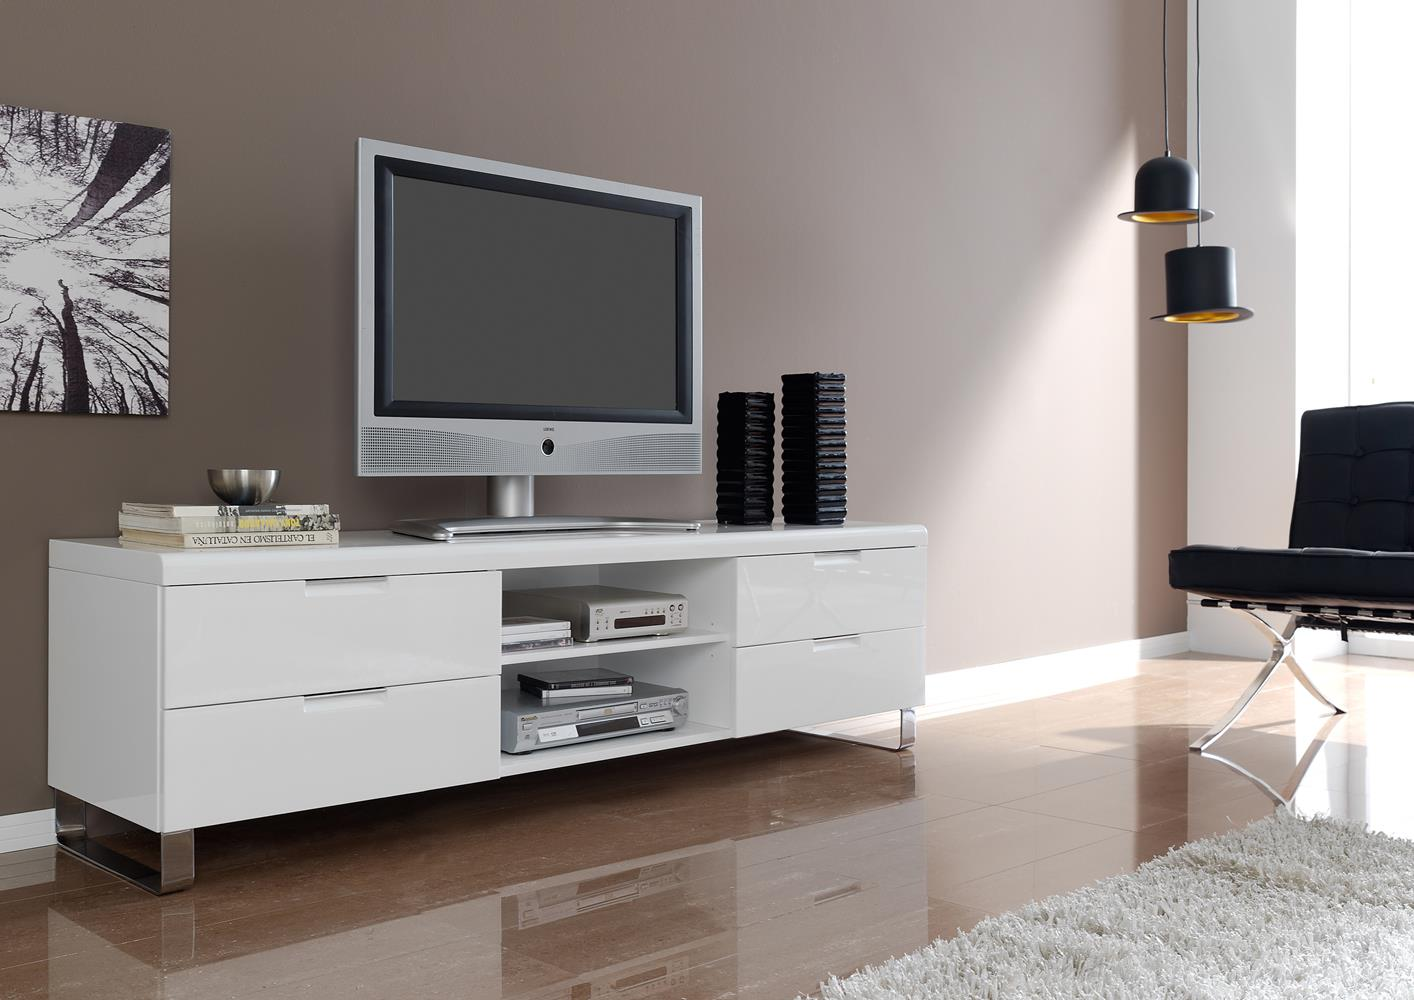 acheter votre meuble t l contemporain laqu blanc pied. Black Bedroom Furniture Sets. Home Design Ideas